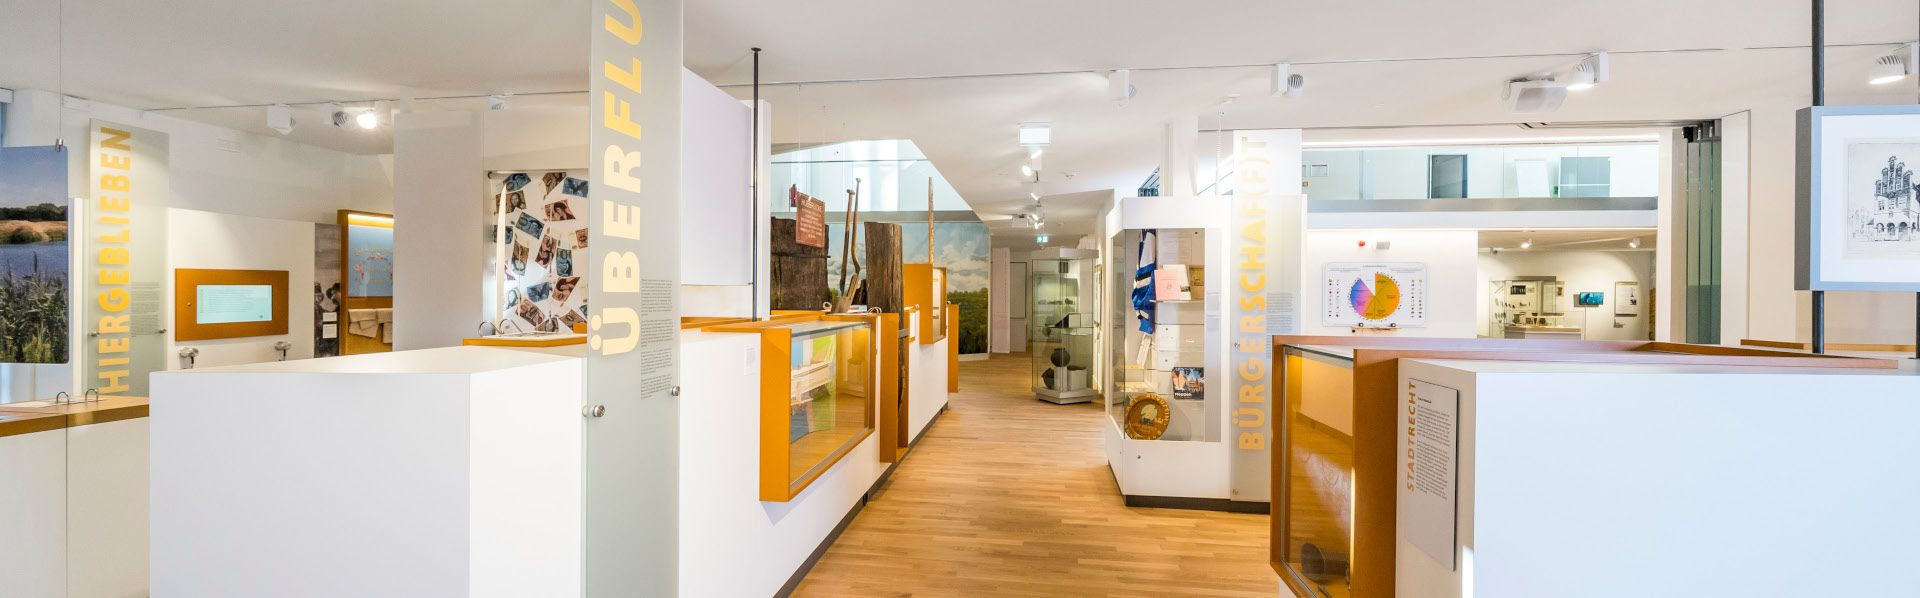 Stadtmuseum Unsere Events